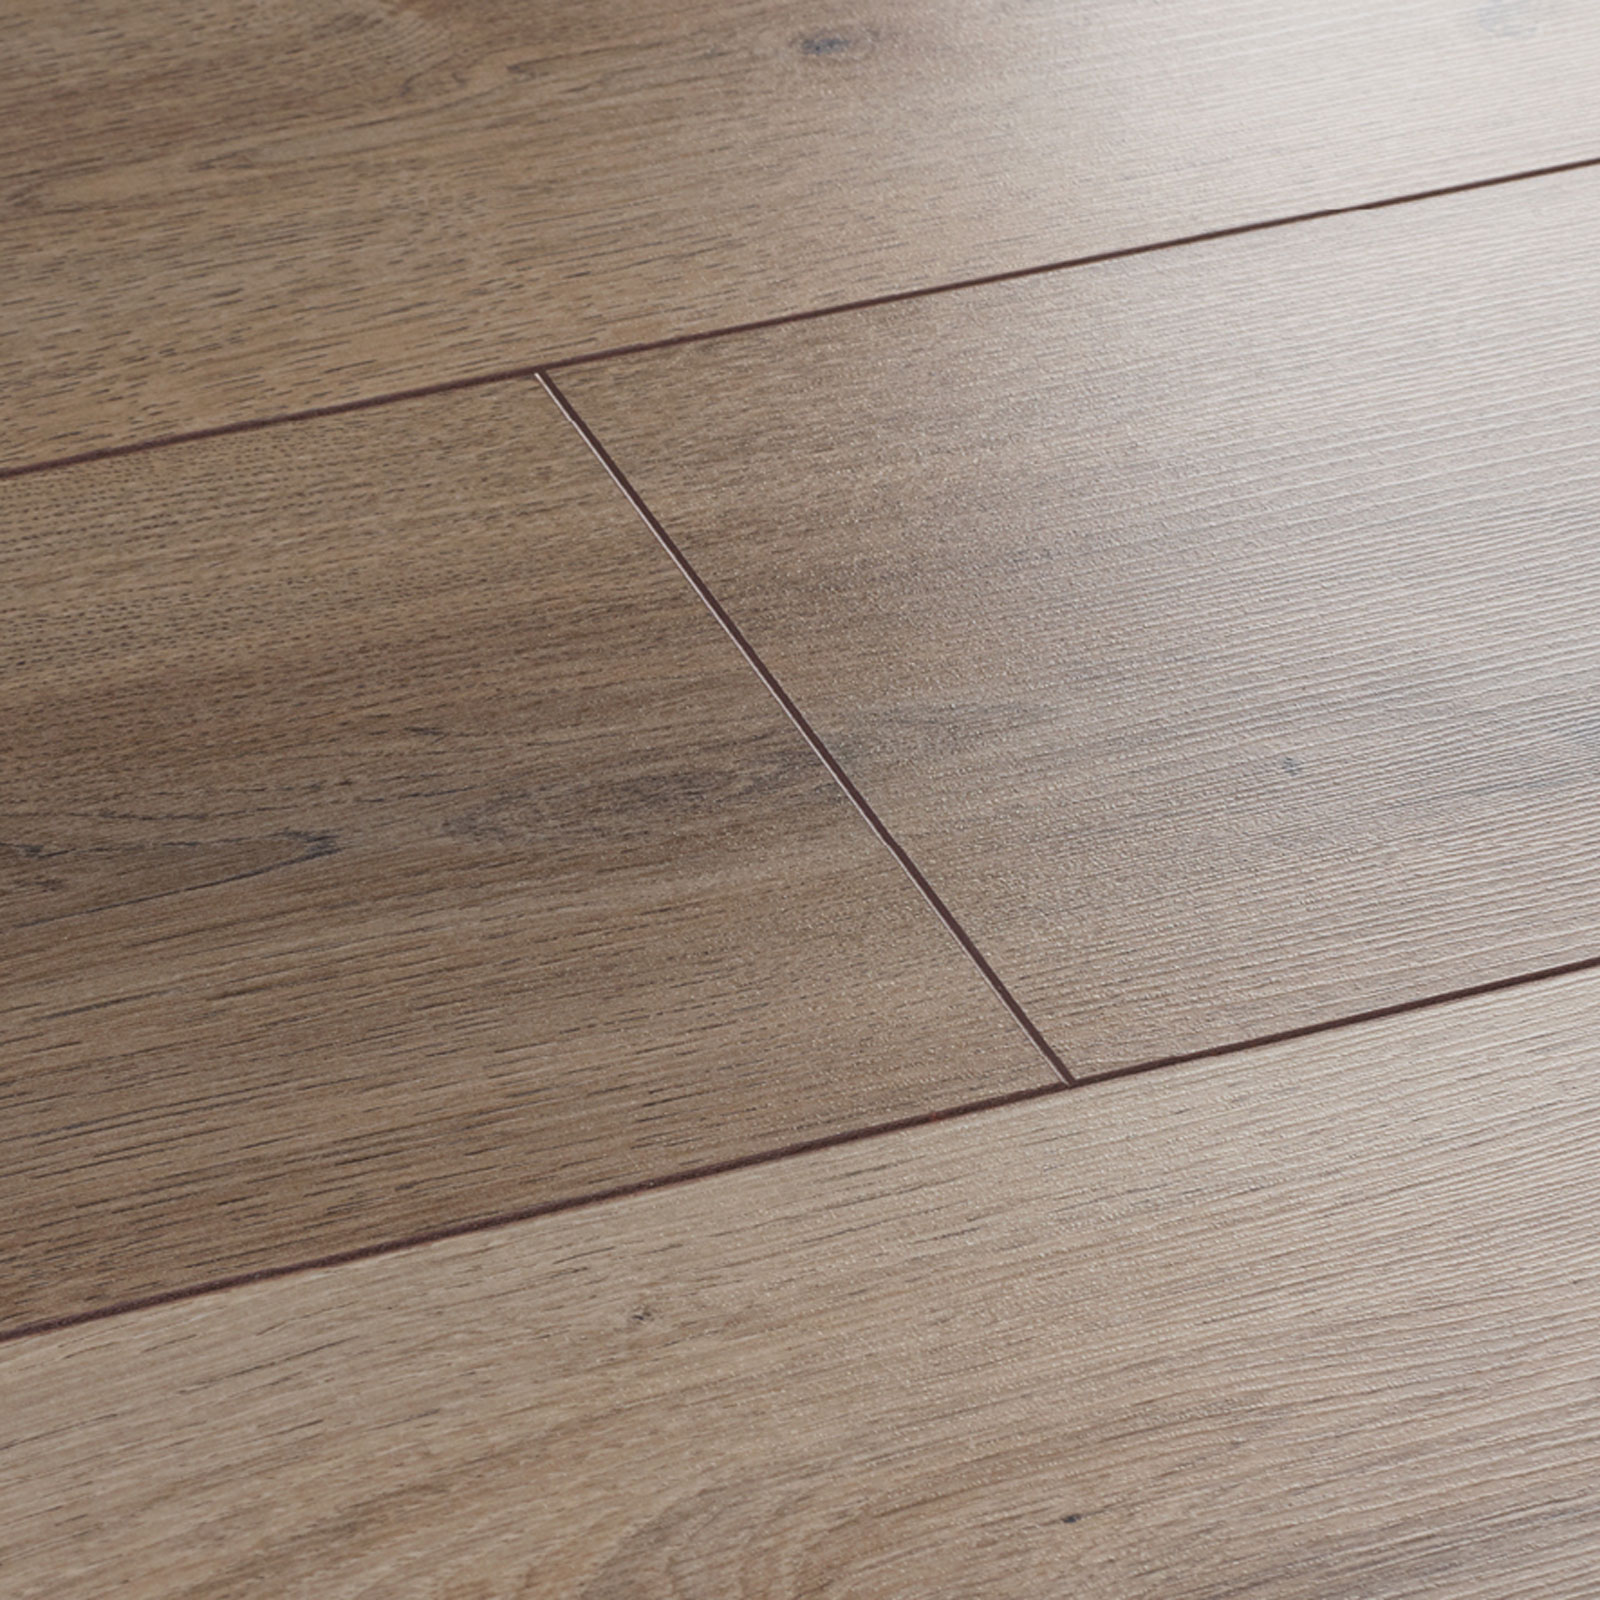 wood laying everything know flat wooden floors before flooring to laminate you in need your